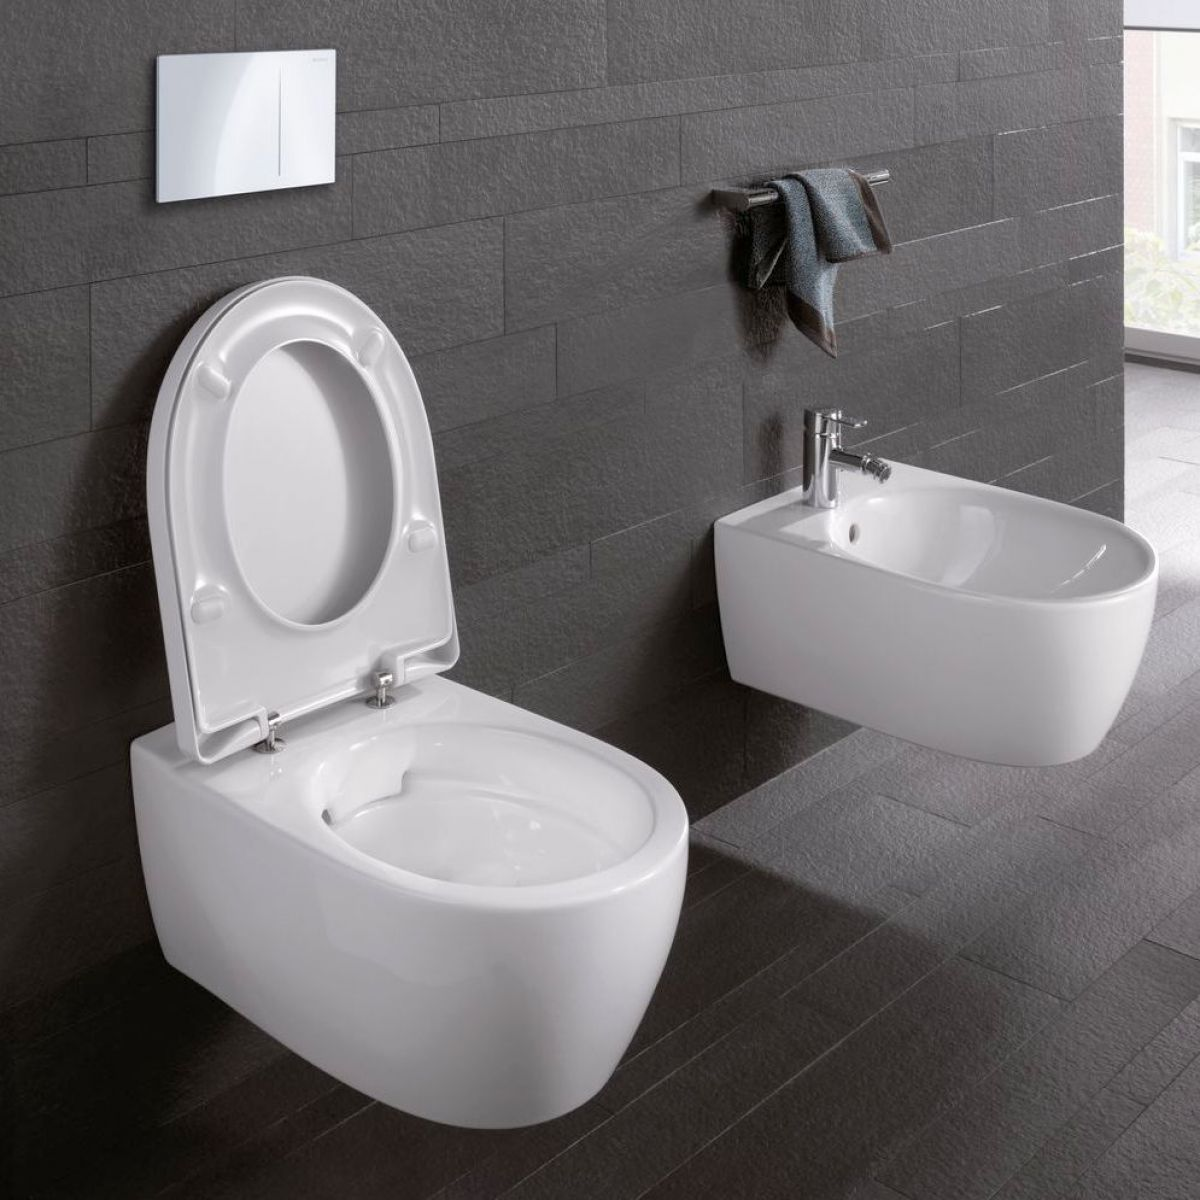 Top Geberit iCon Rimfree Wall Hung Toilet : UK Bathrooms IG76